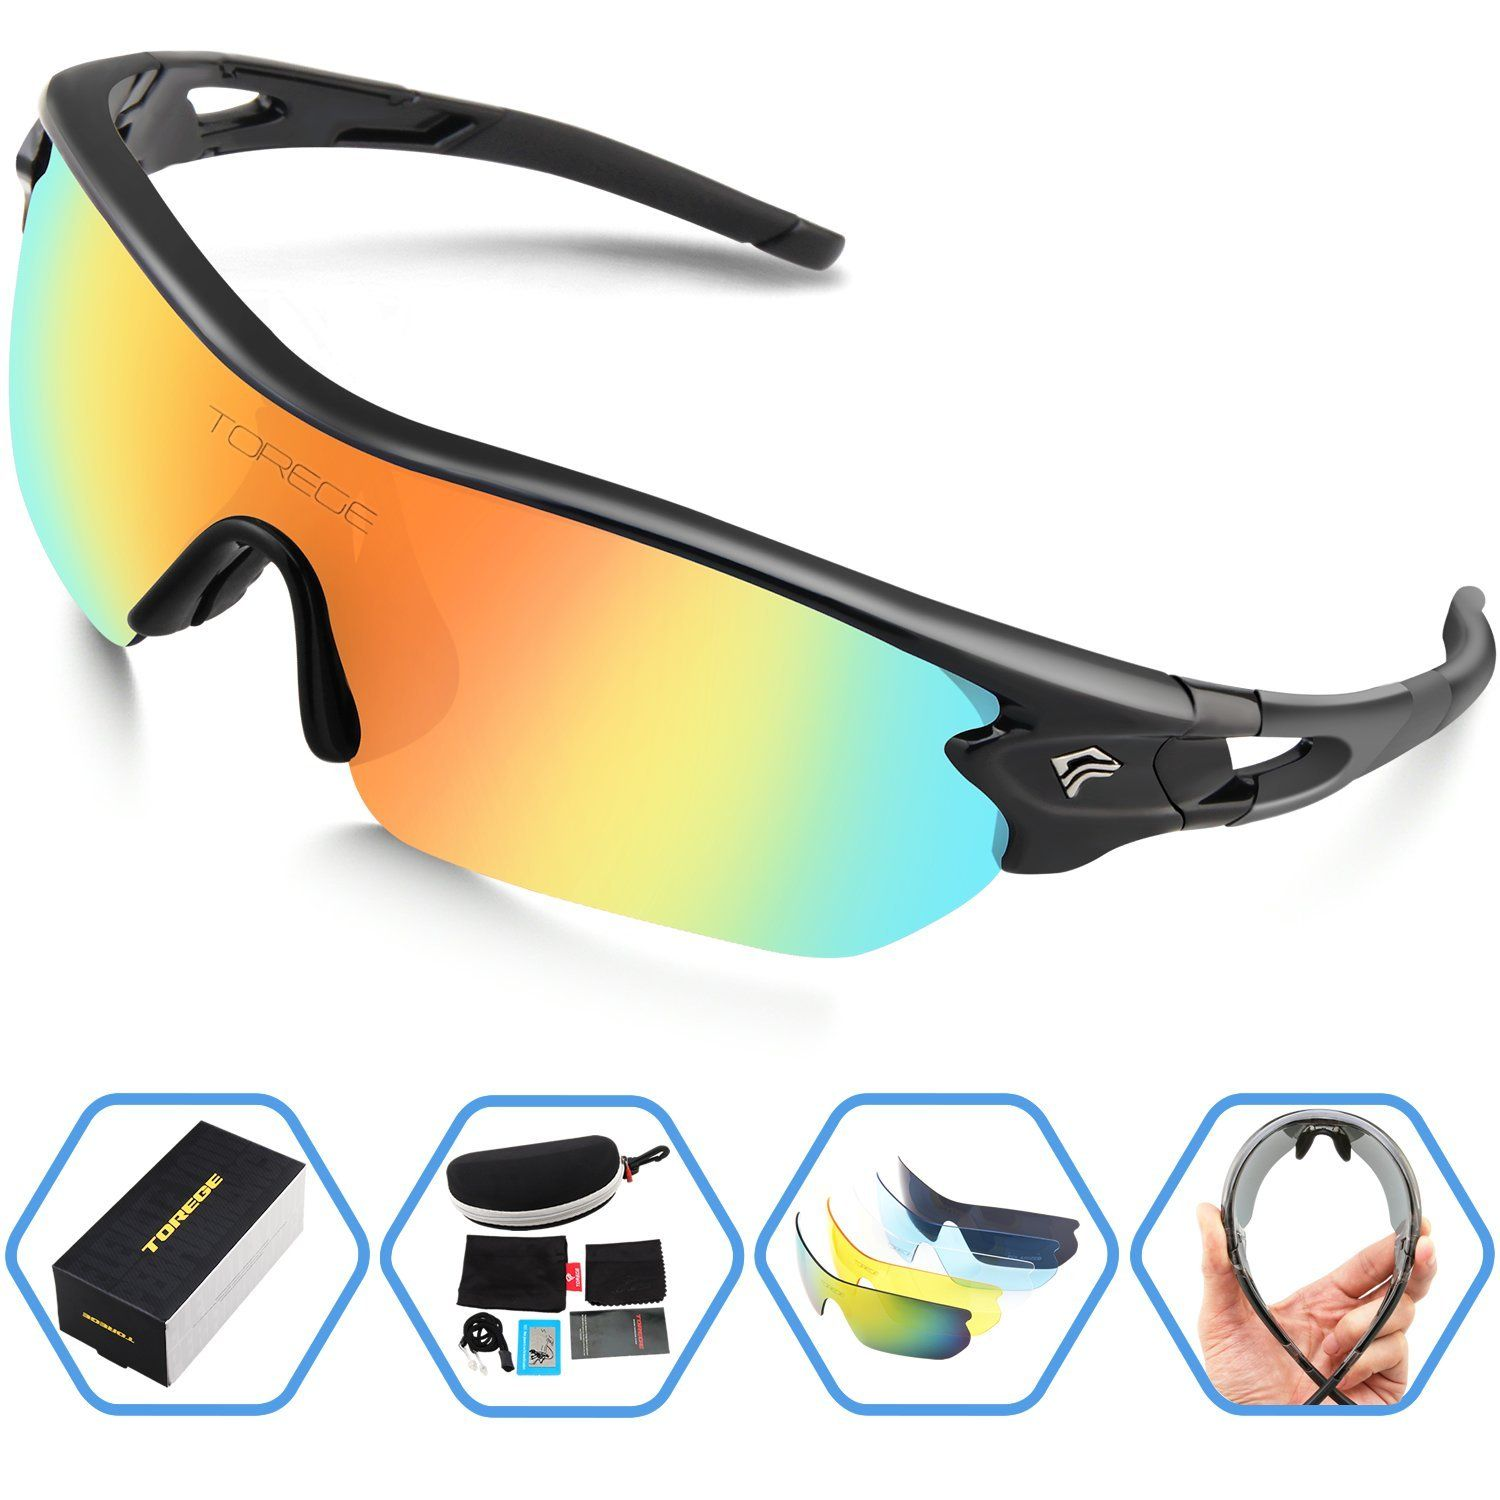 70397f20719 Amazon.com   Torege Polarized Sports Sunglasses With 5 Interchangeable  Lenes for Men Women Cycling Running Driving Fishing Golf Baseball Glasses  TR002 ...